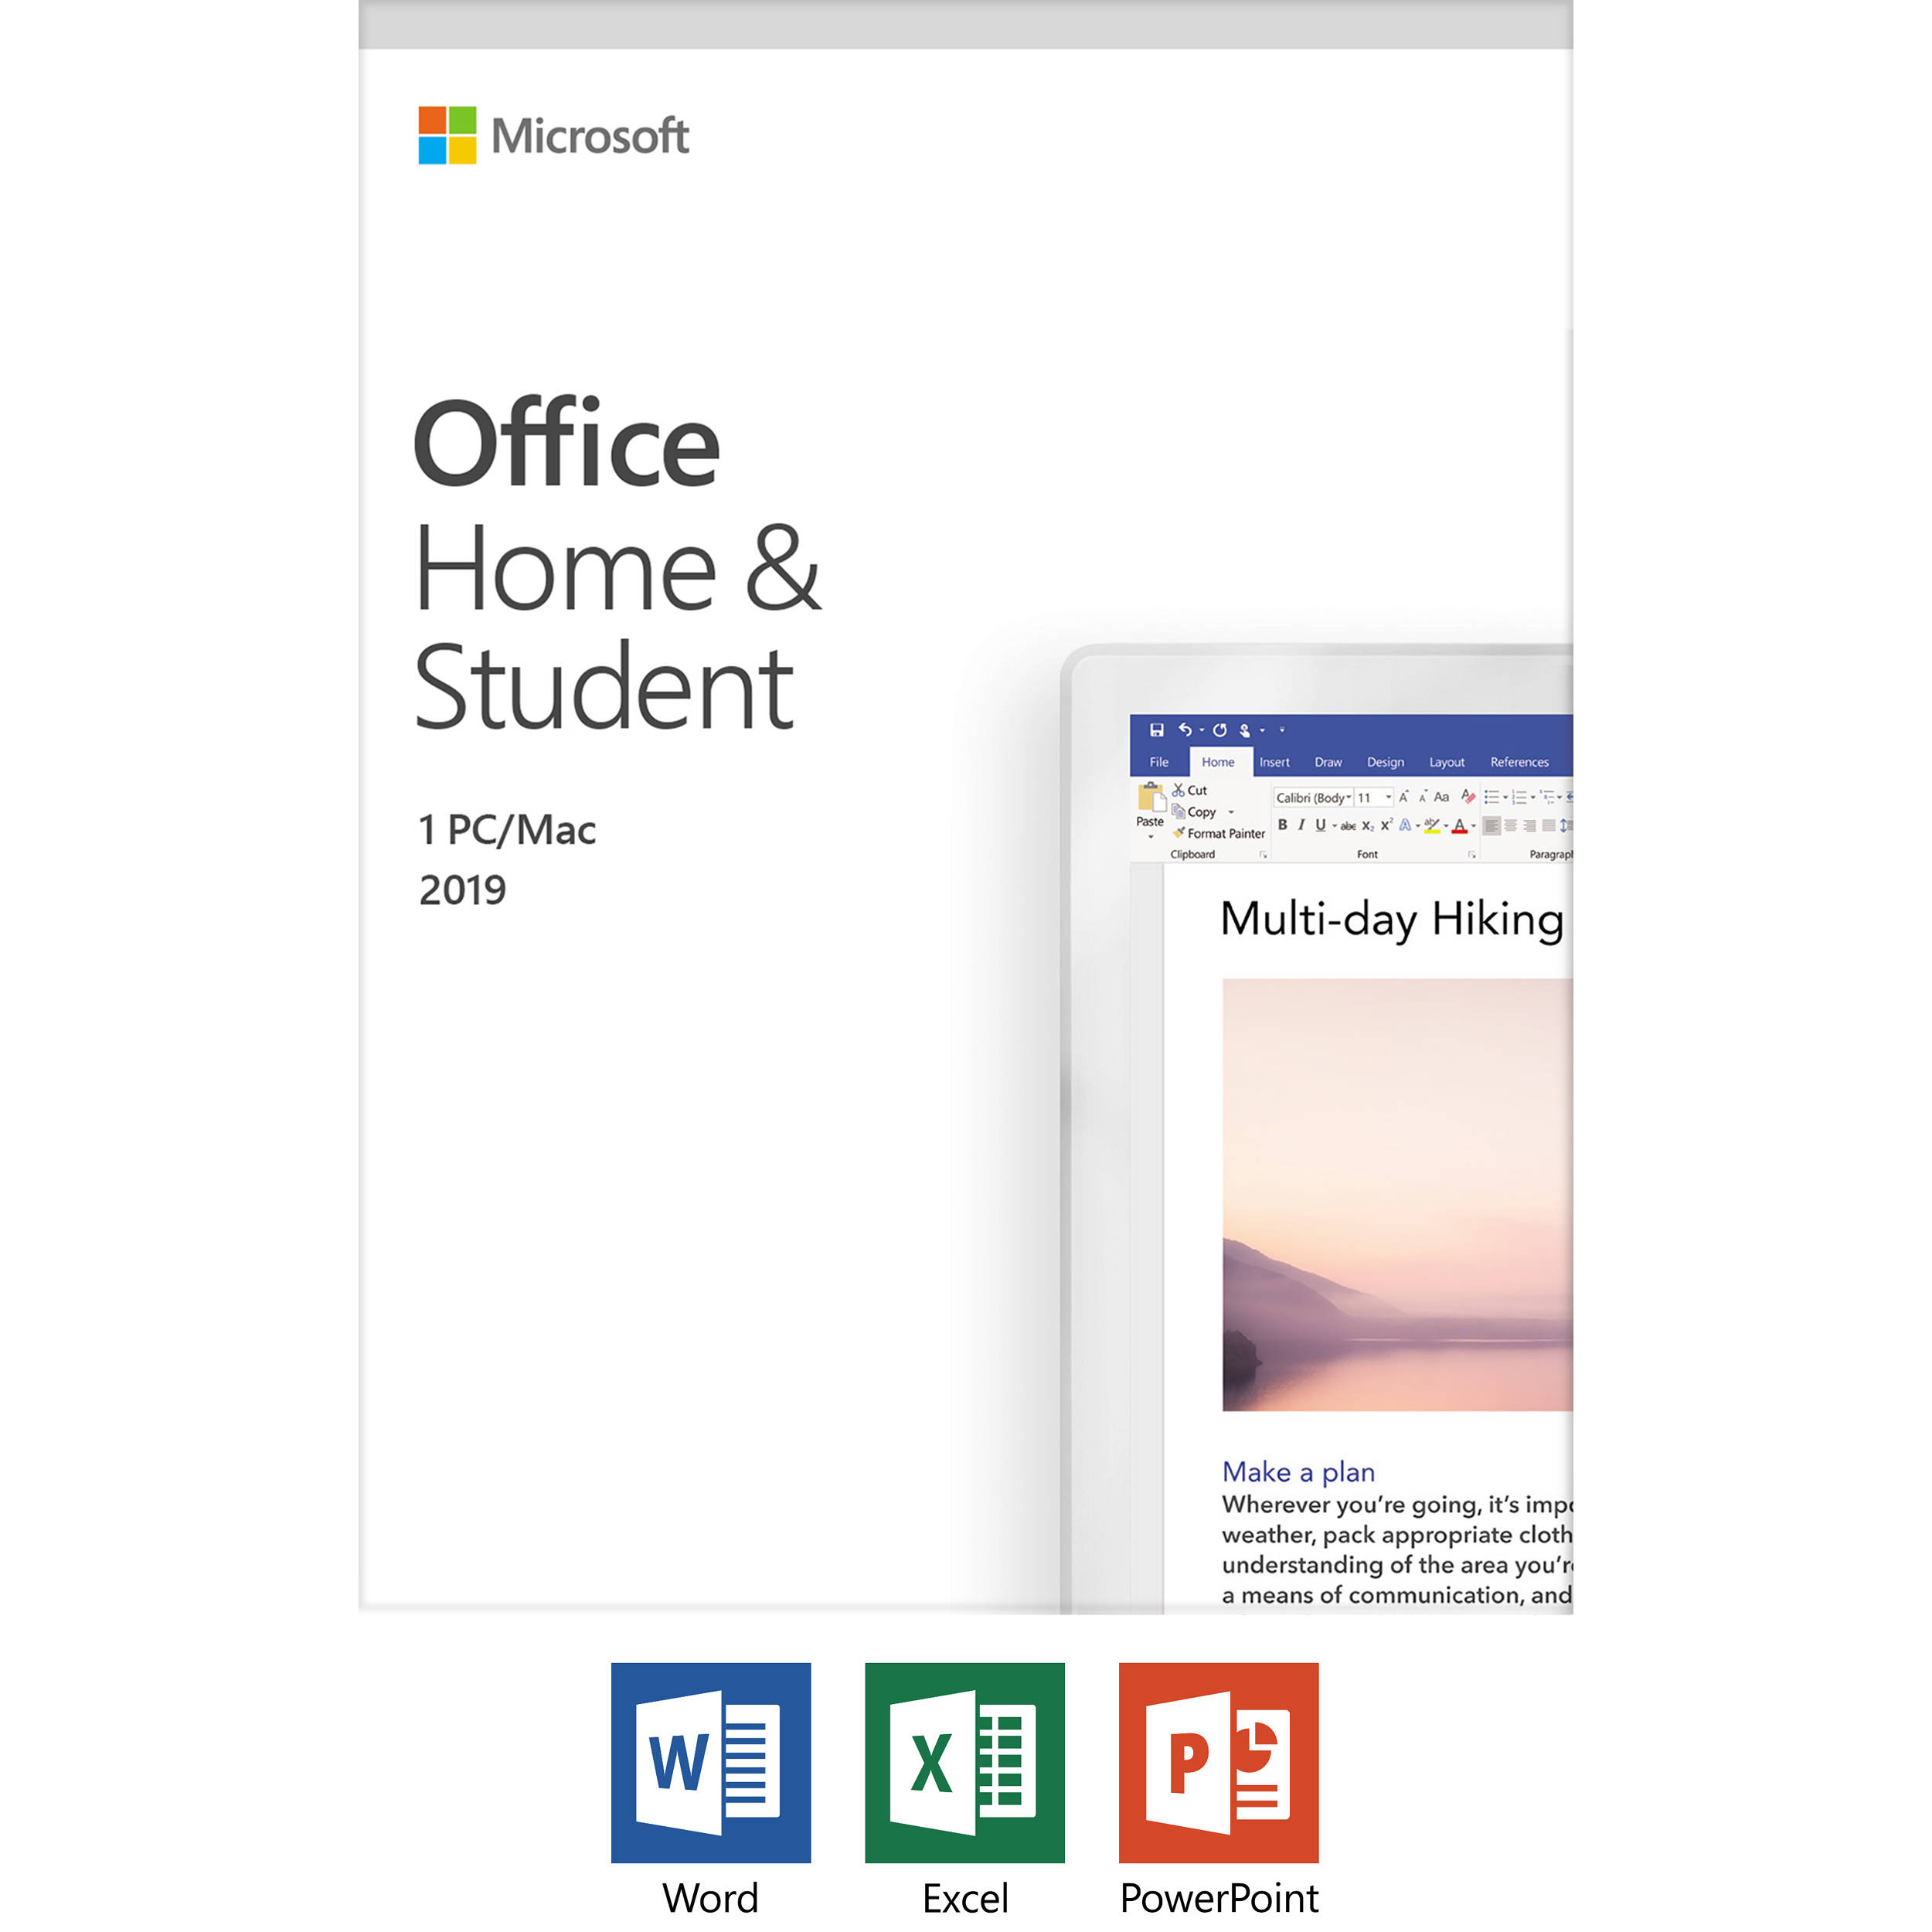 Microsoft Office Home & Student 2019 (1-User License, Product Key Code)